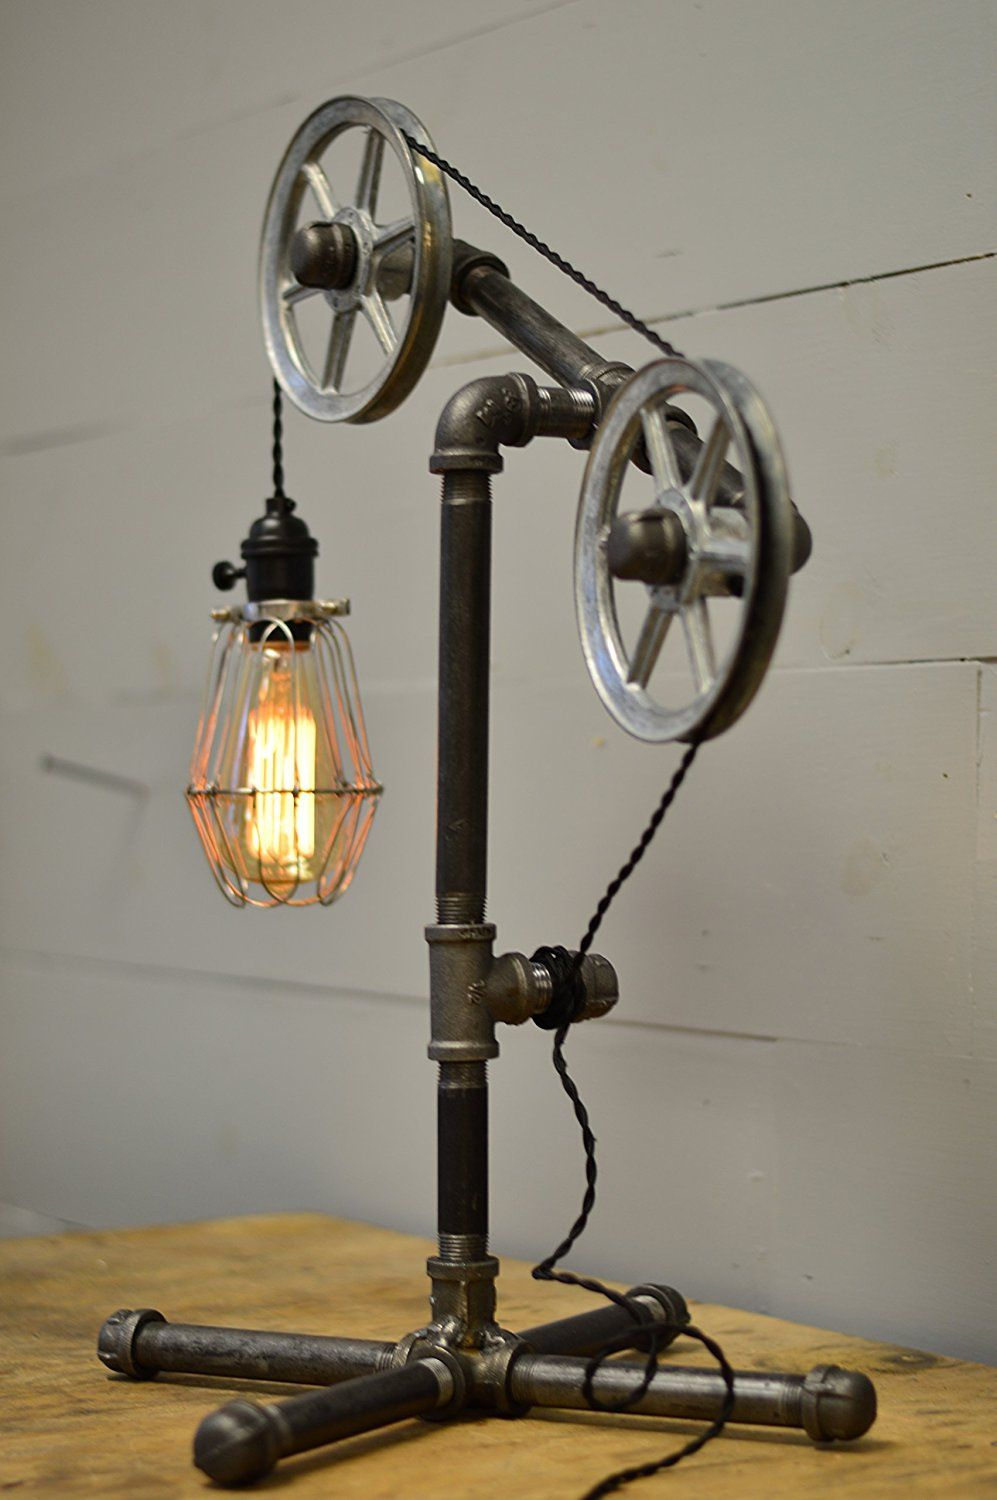 Industrial Table Lamp Rohr Beleuchtung Lampen Rustikale Lampen